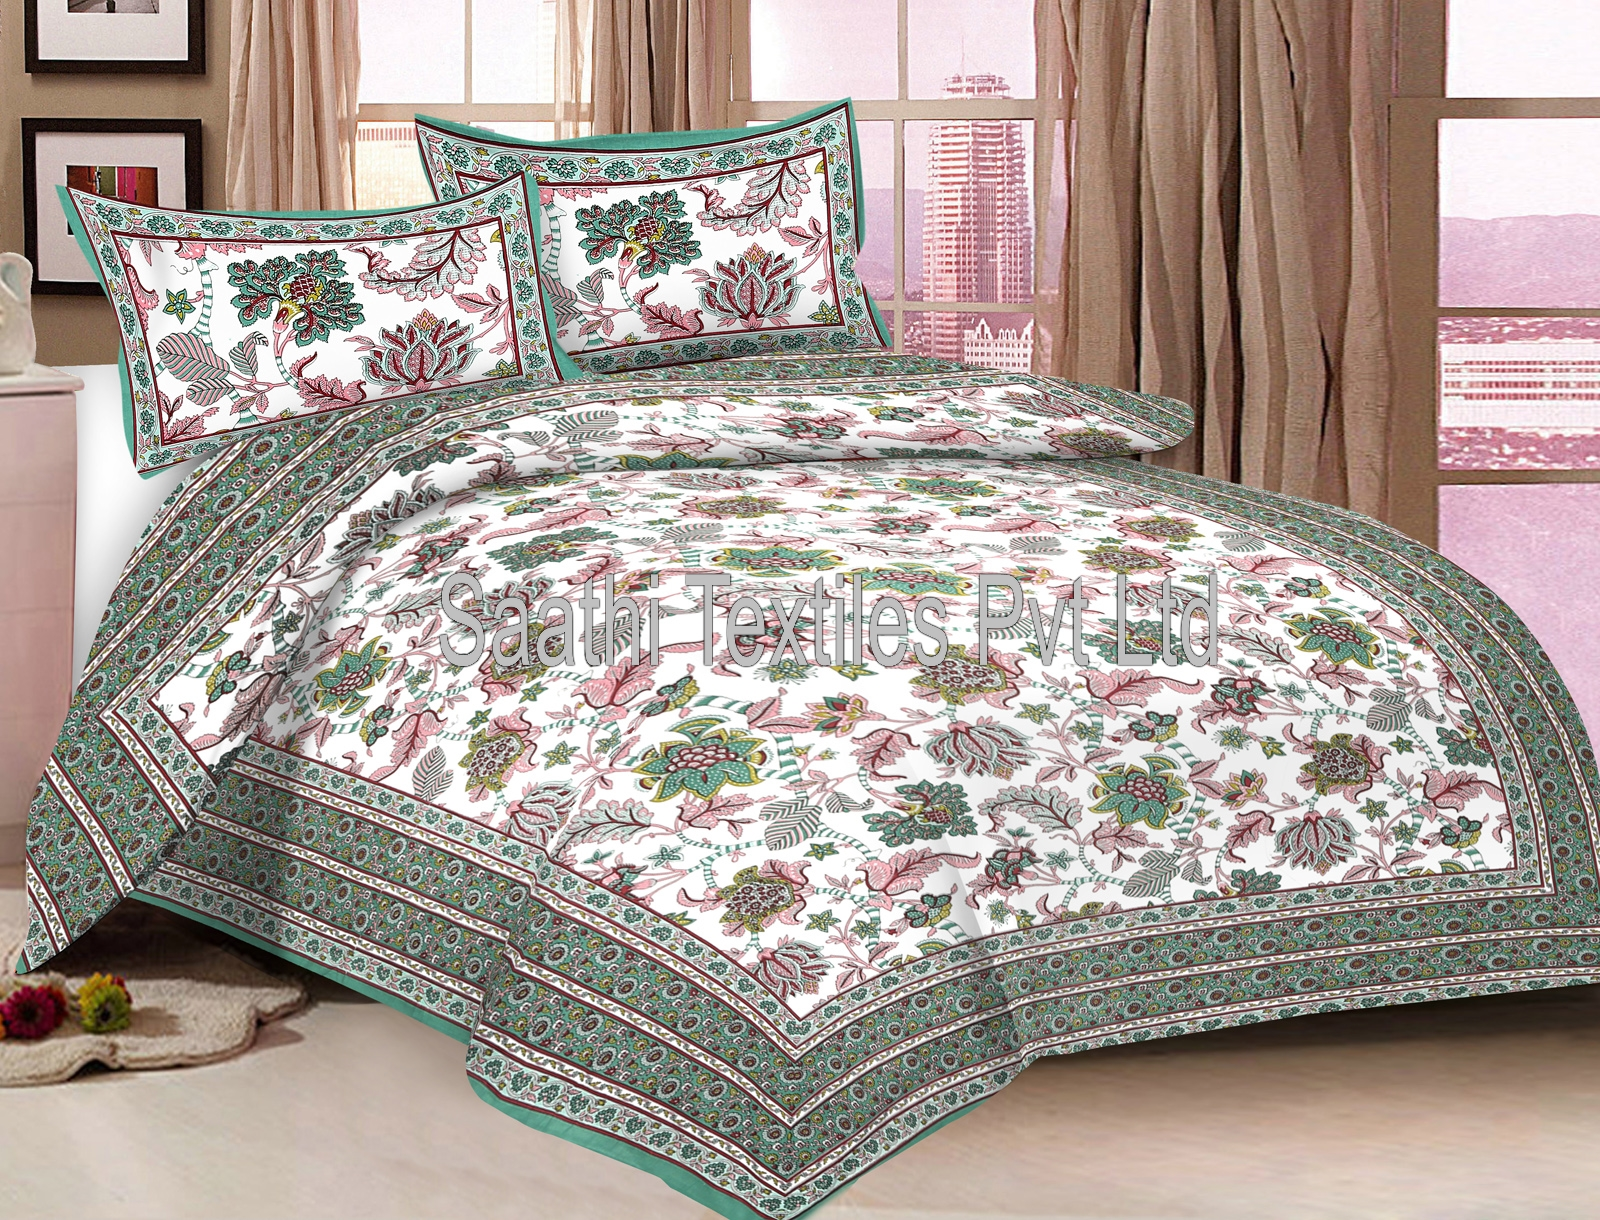 Rajasthani Printed Double Bed Sheets With Pillow Covers